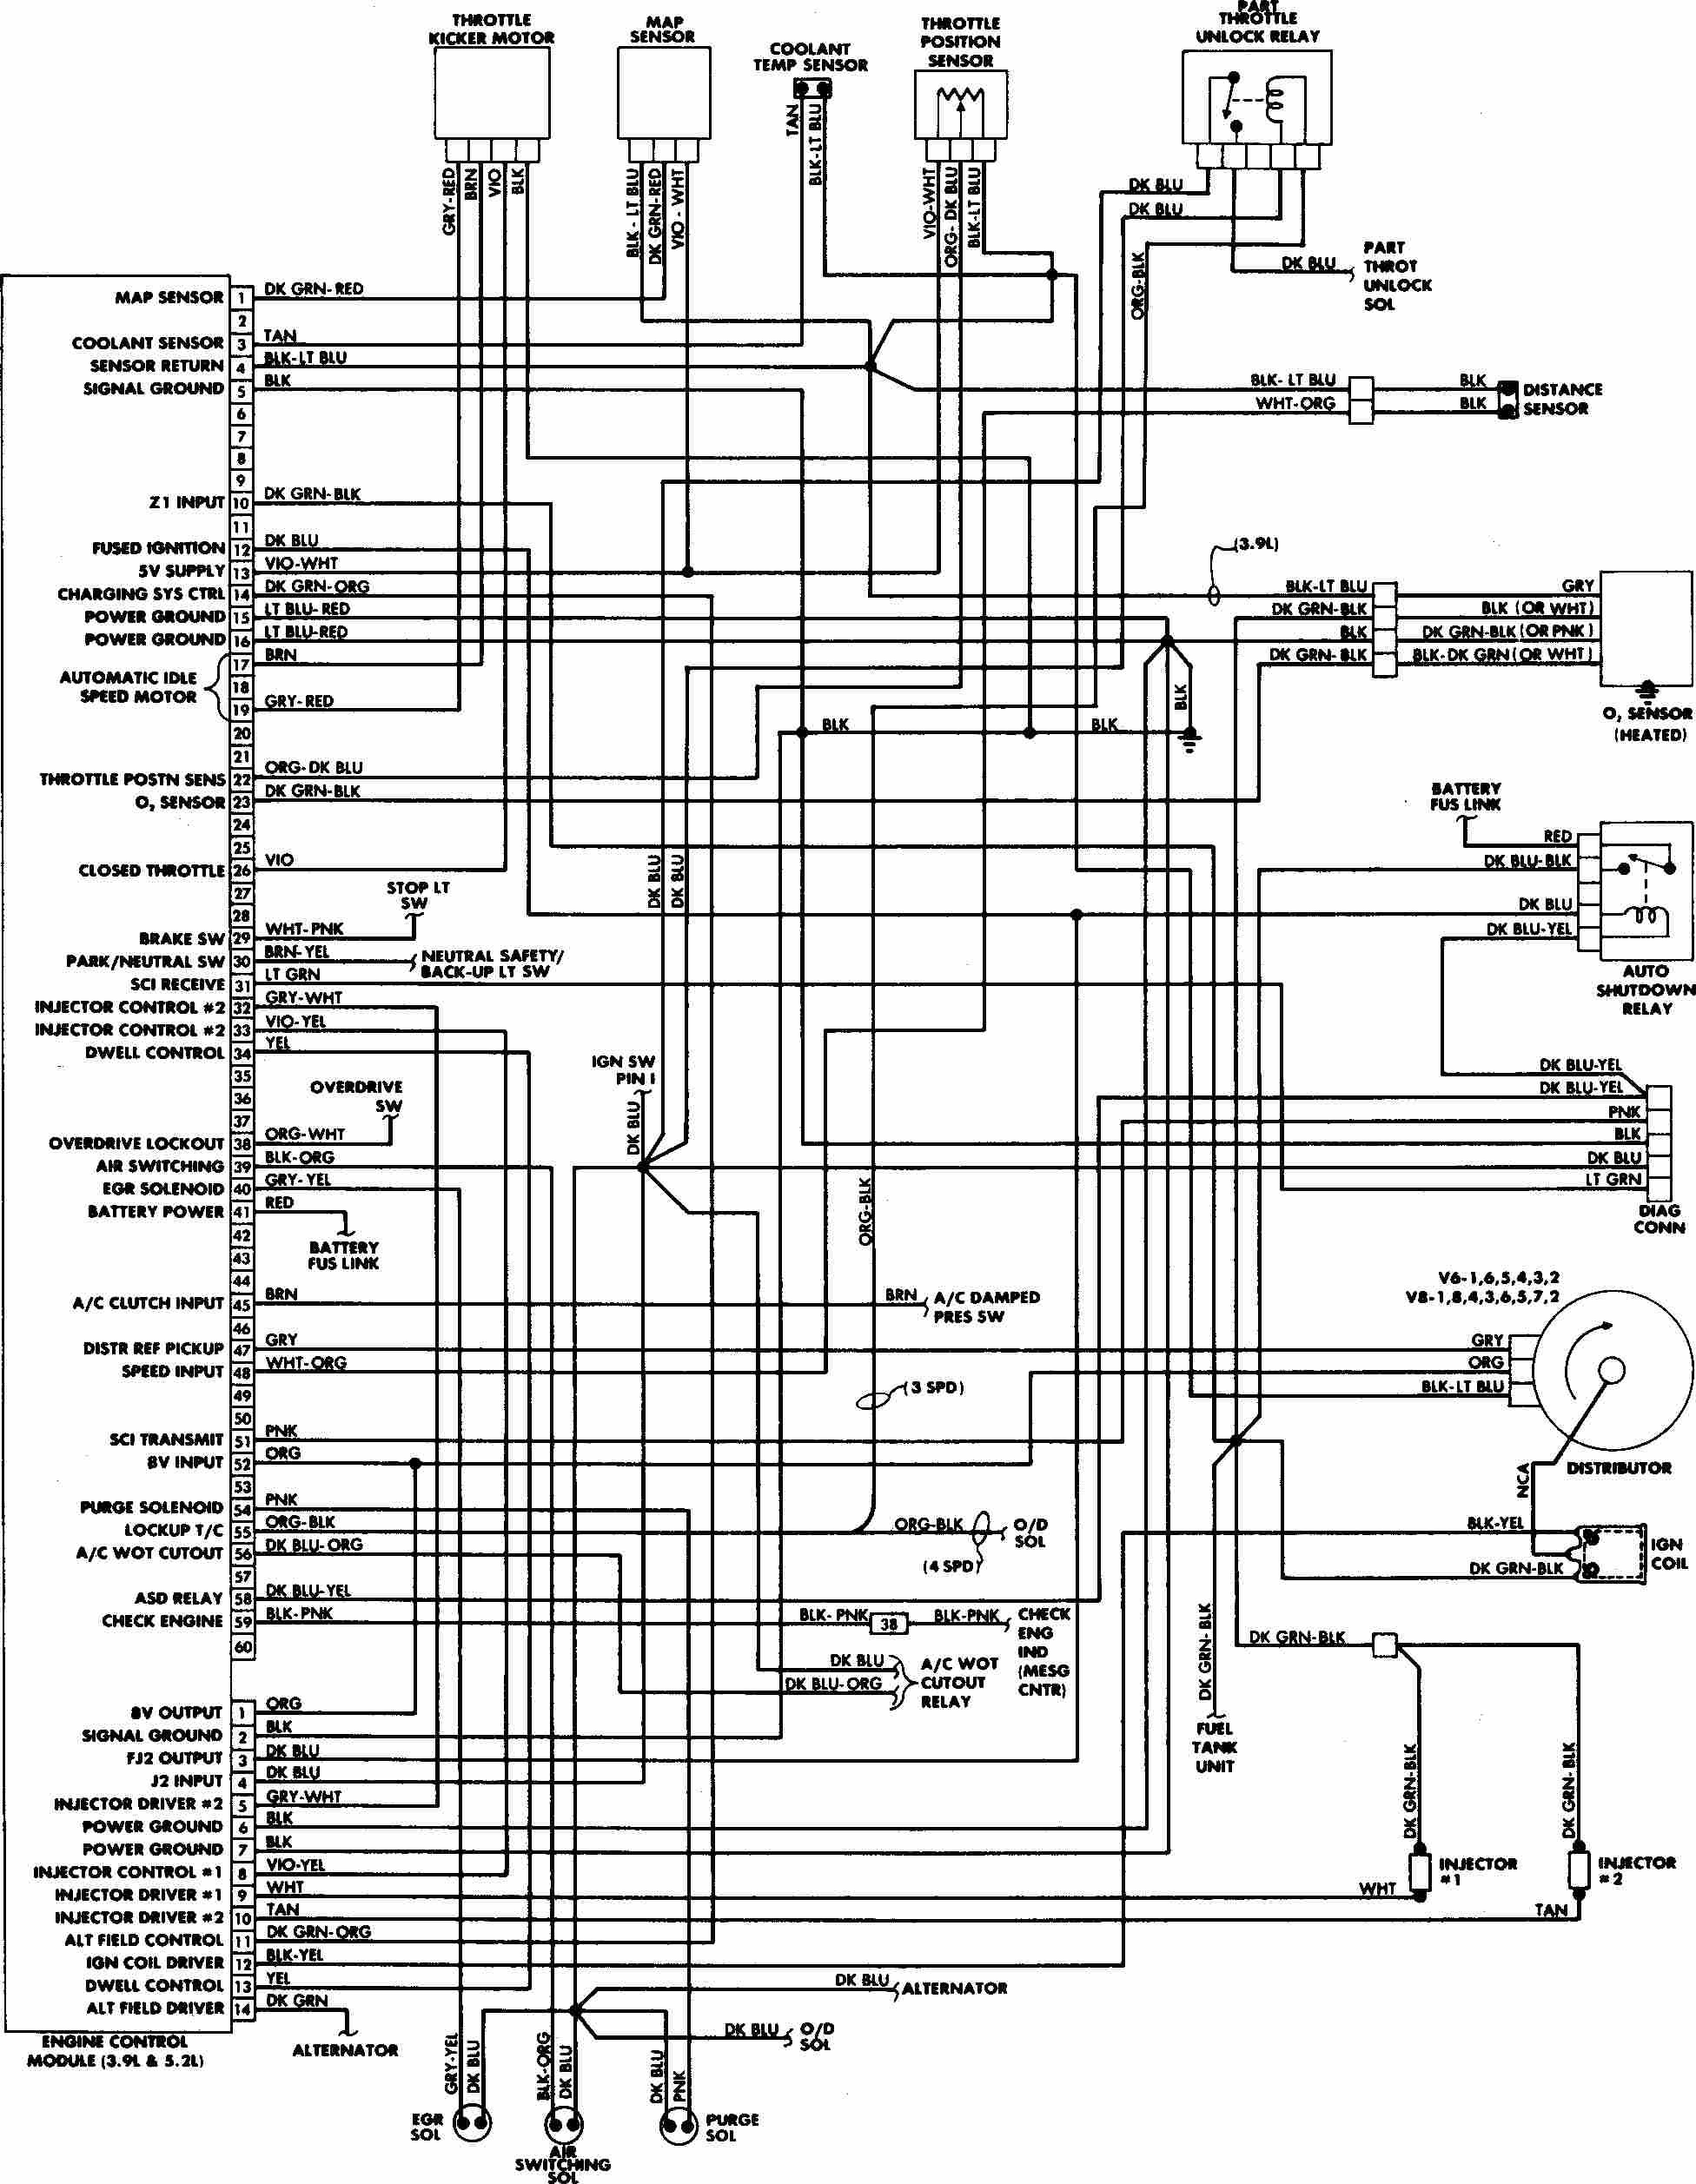 [NRIO_4796]   engine control wiring diagram of 1988 dodge w100 | Electrical diagram,  Unique cars, Diagram | Dodge Neon Wiring Schematic |  | Pinterest